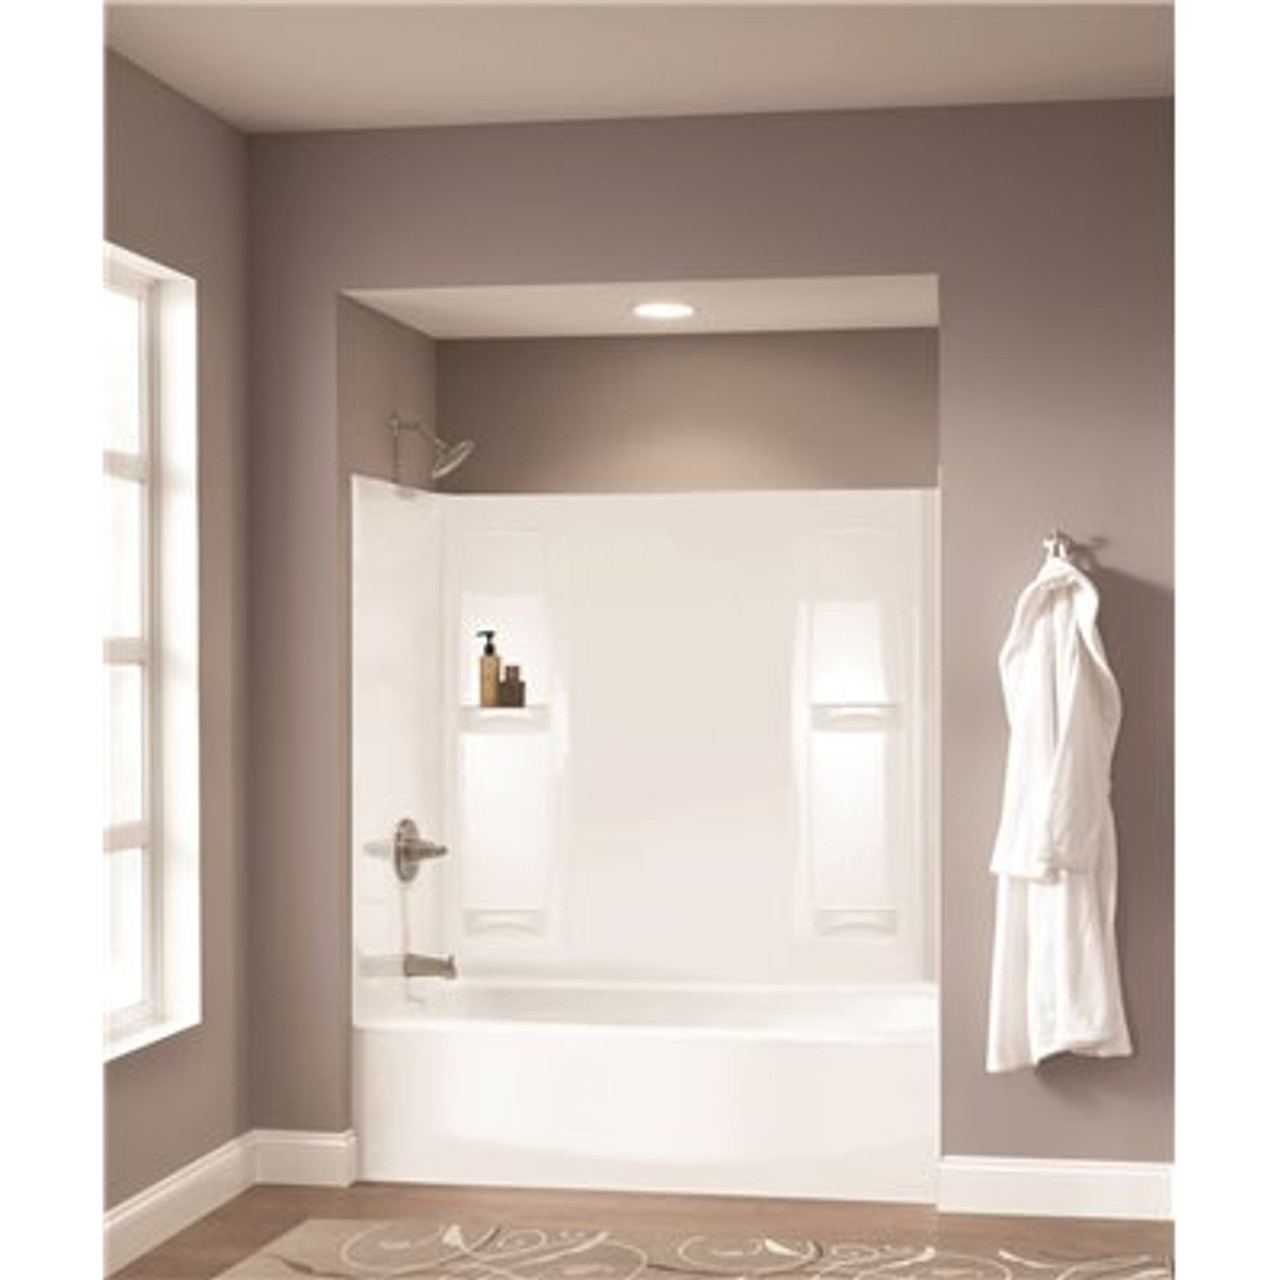 Pro-Series 60 in. W x 57 in. H Five Piece Glue Up Tub Surrounds in High Gloss White Item # 3586195 Delta Part # 40154 UPC Code 720416004019 UNSPSC Code 30181507